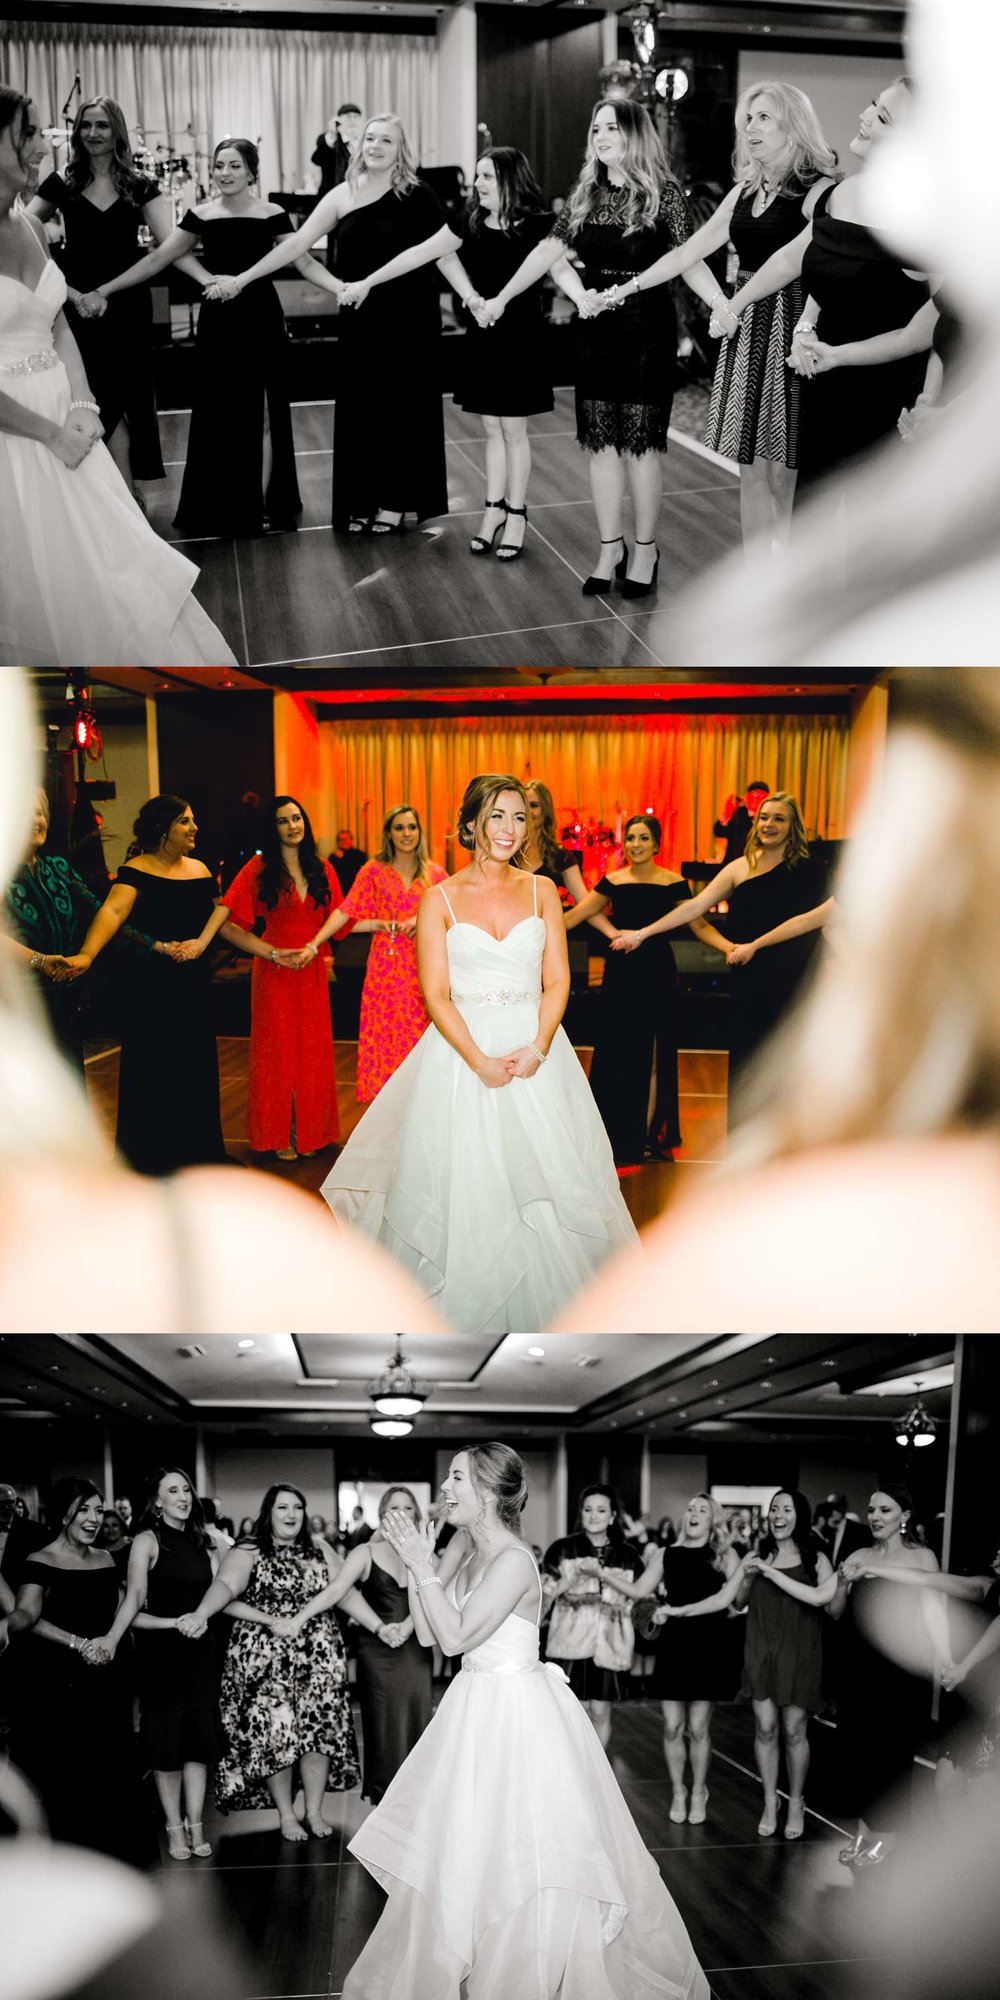 MARLEE+LLOYD+MORGAN+ALLEEJ+TEXAS+TECH+MERKET+ALUMNI+WEDDINGS+LUBBOCK+WEST+TABLE+CLASSIC+SPAIN_0261.jpg